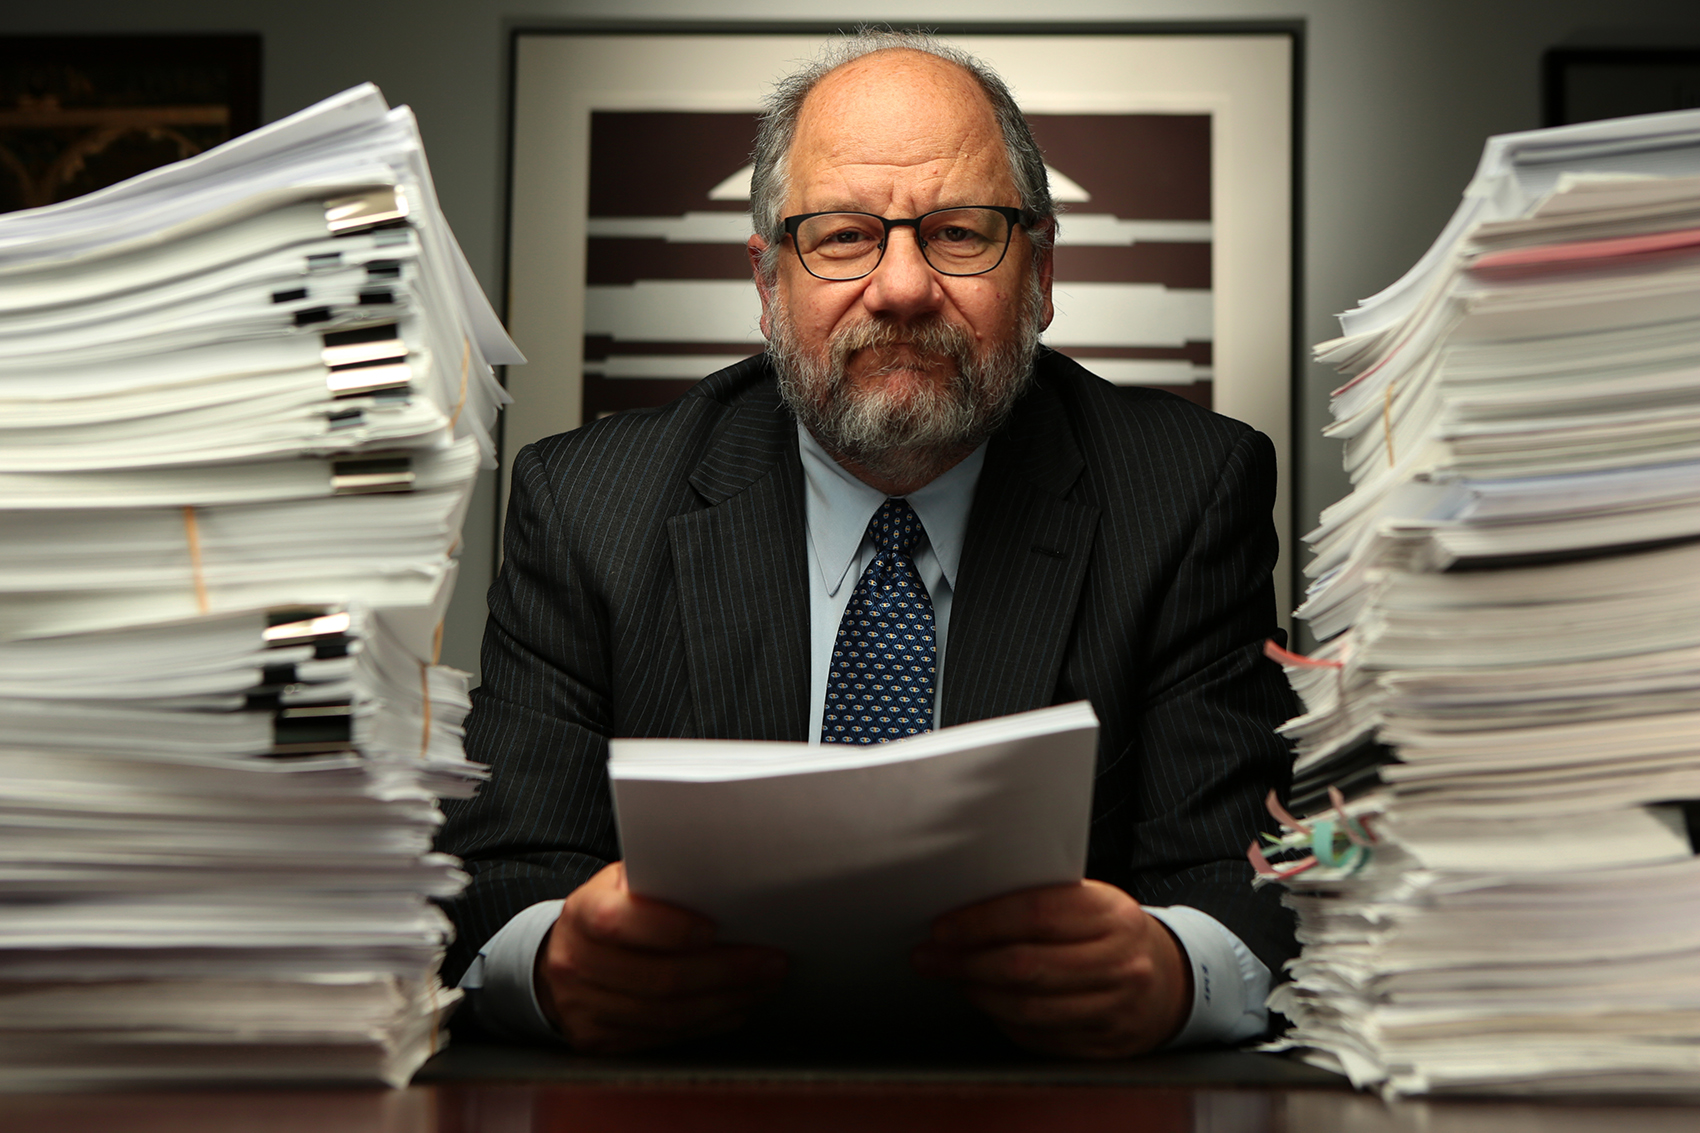 Robert Fishman, Attorney of Law at Shaw Fishman poses for a portrait at their office in downtown Chicago on November 19, 2014.  Manuel Martinez/Crain's Chicago Business